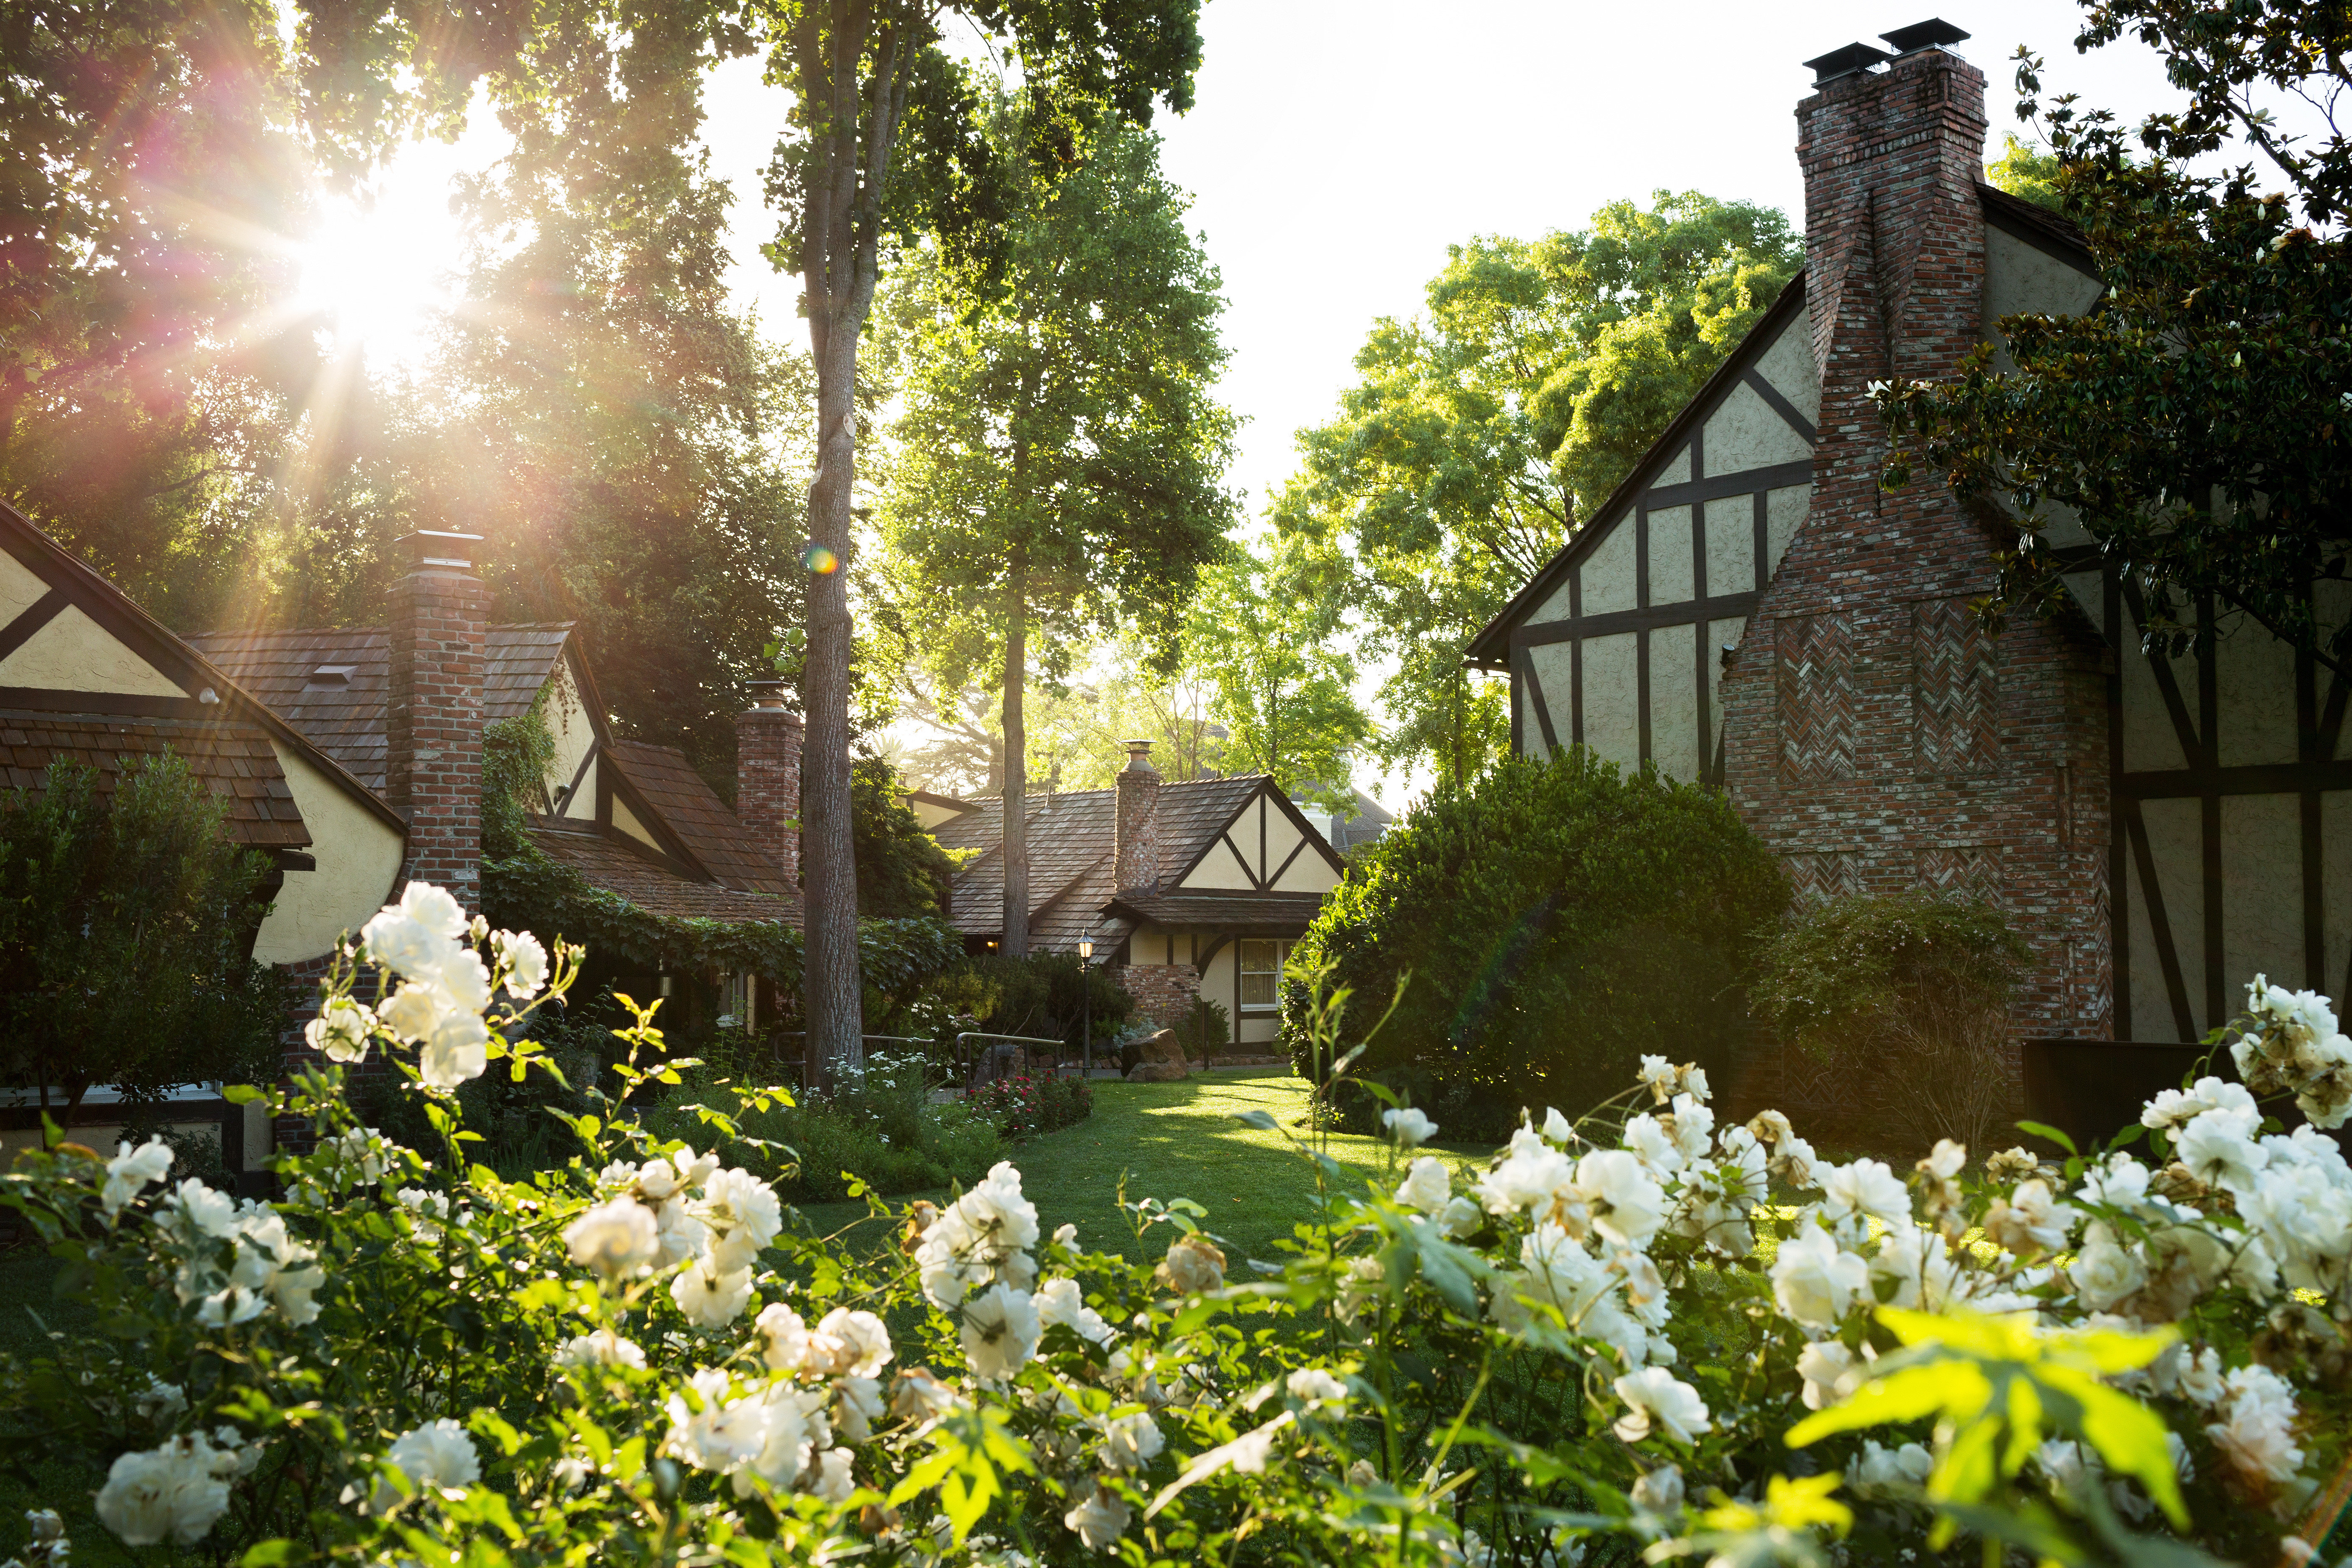 Exterior Garden Grounds Inn Romantic tree flower plant house backyard yard lawn sunlight cottage Courtyard bushes surrounded day